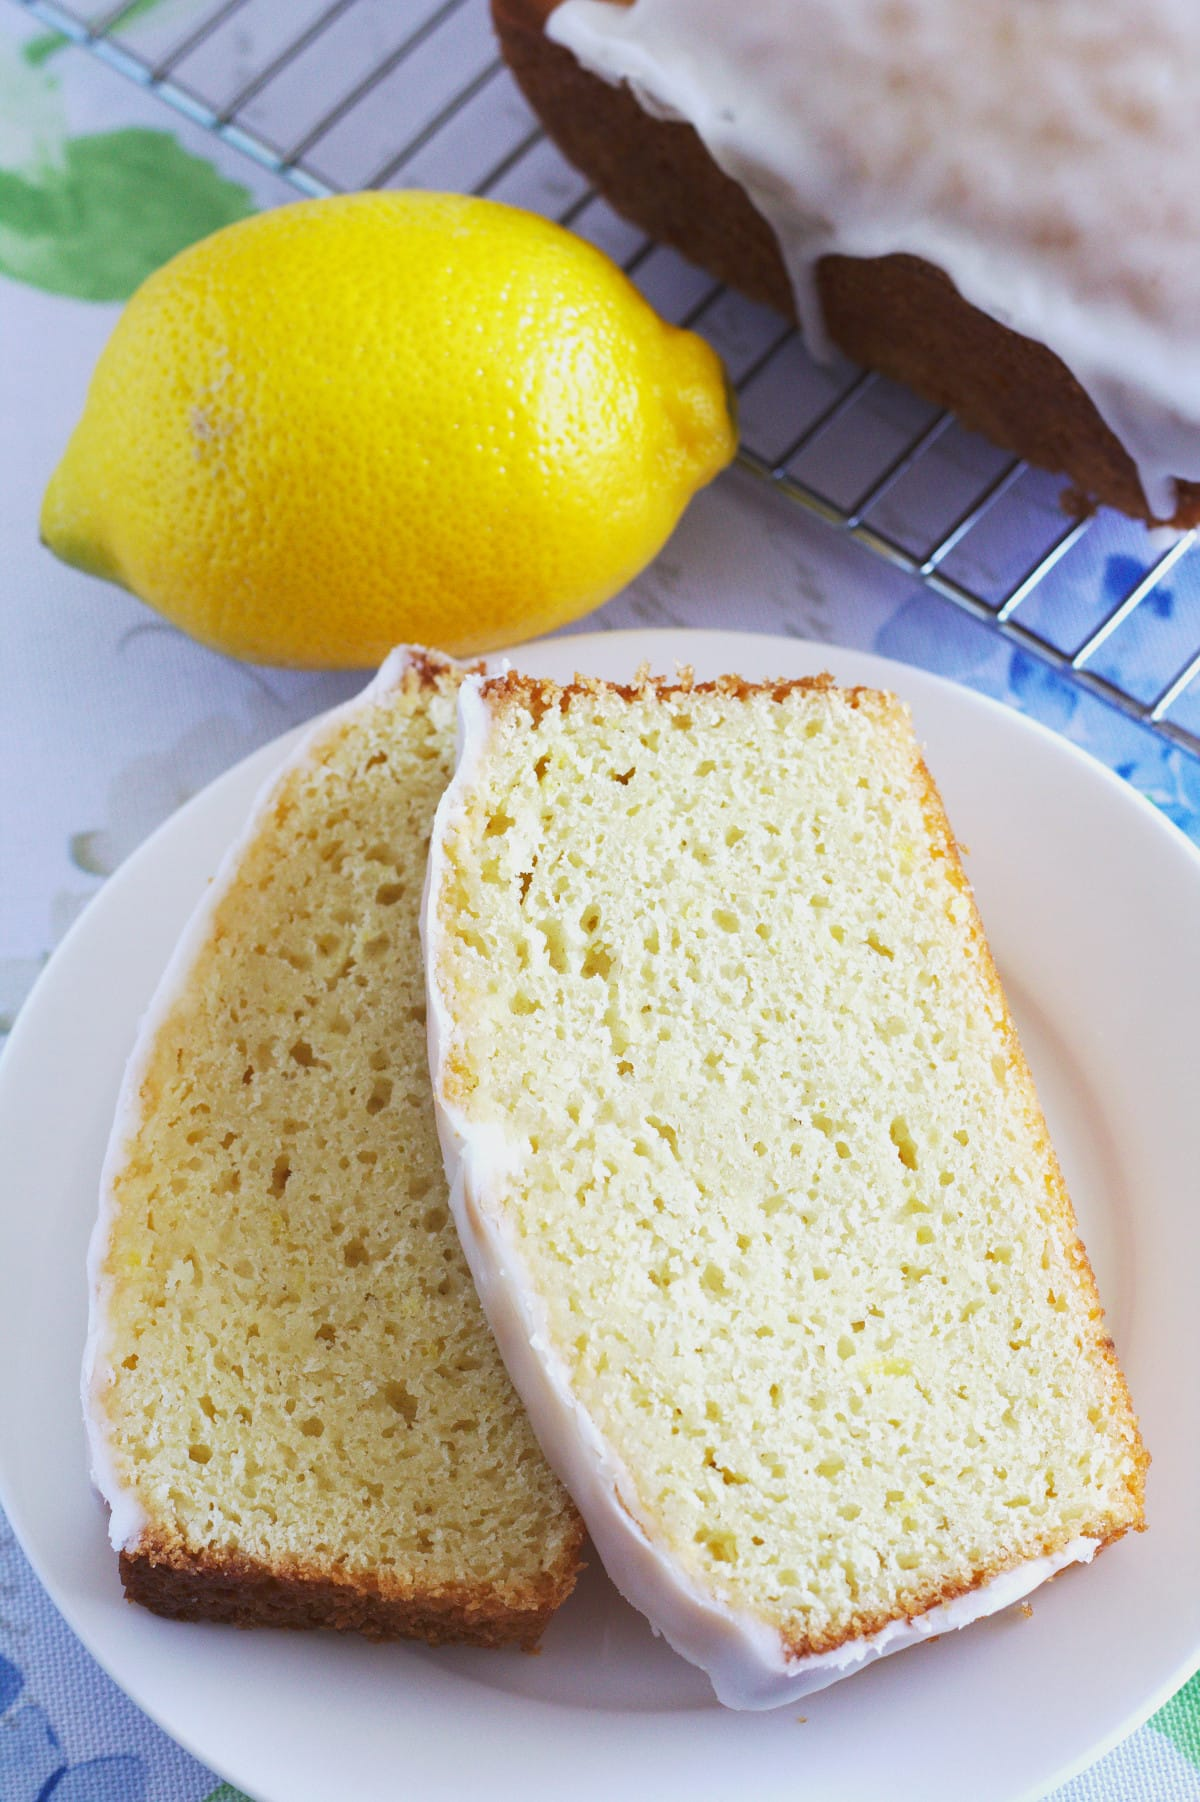 Two slices of lemon loaf on a plate with a lemon and the rest of the loaf.